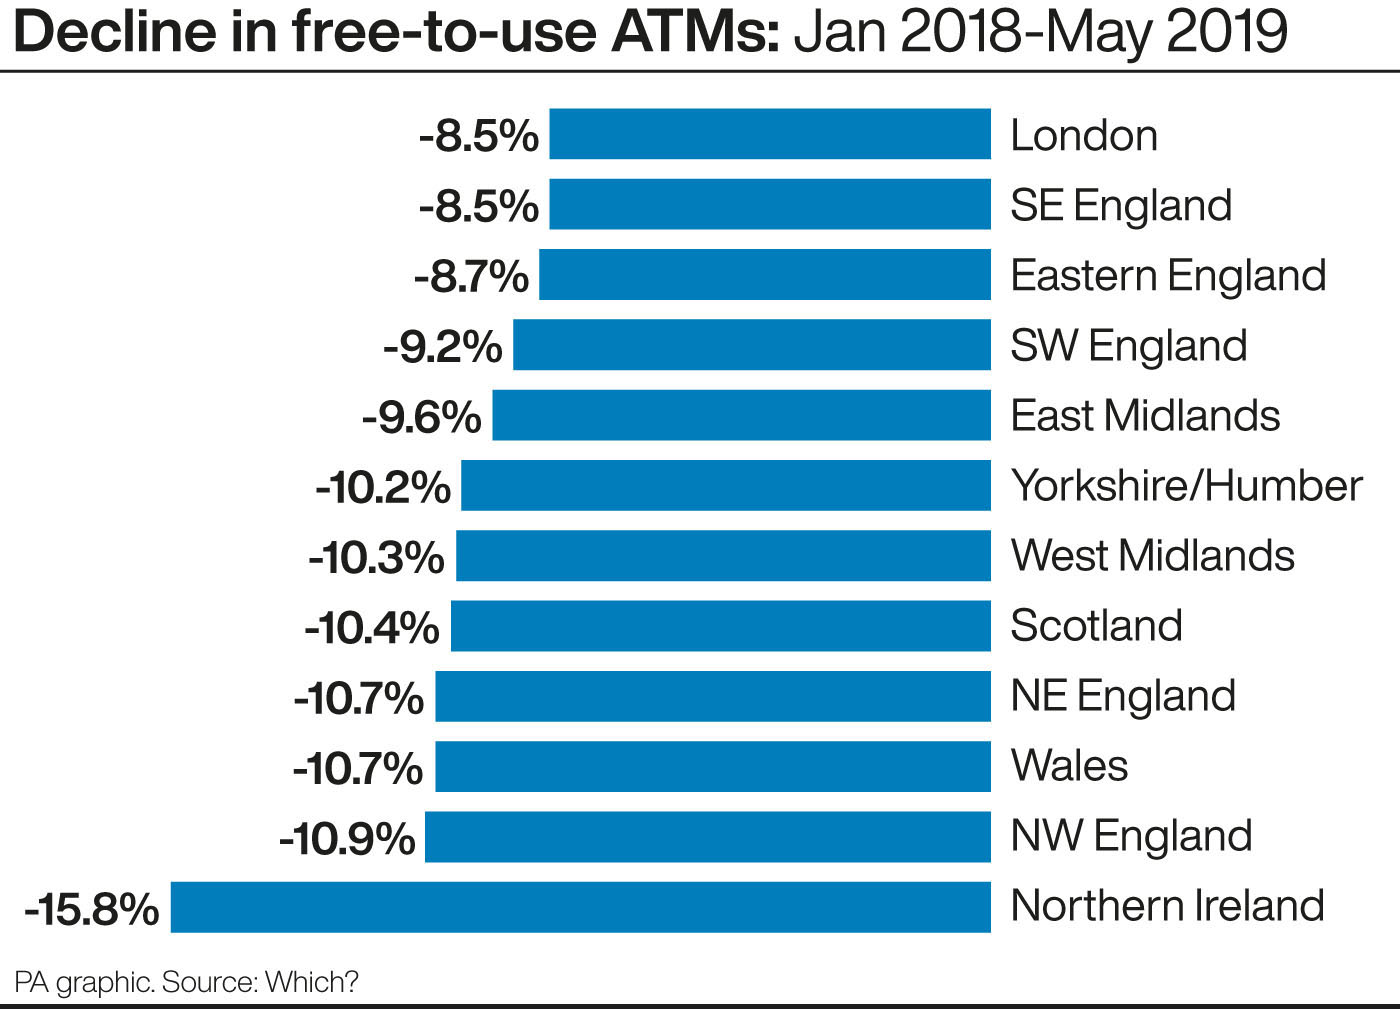 Decline in free-to-use ATMs